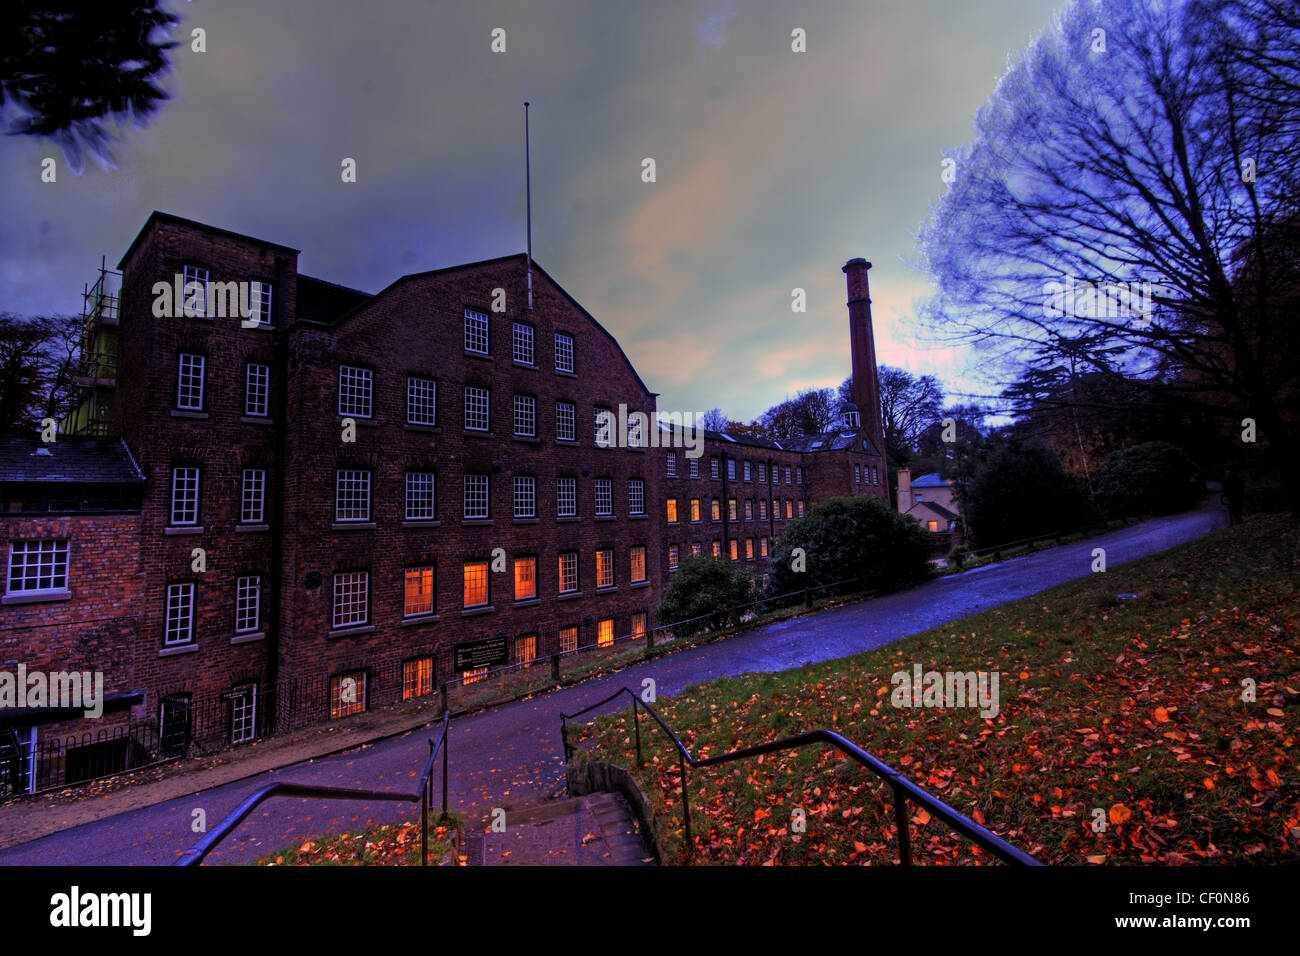 Styal,Cotton,Mill,NT,(,National,Trust,),near,Manchester,Airport,Lancashire,Cheshire,at,dusk,gotonysmith,Gregs,Quarry,Bank,Mill,preserved,textile,mills,of,the,Industrial,Revolution,cotton,industry,Samuel,Greg,River,Bollin,Sir,William,Fairbairn,Apprentice,House,Norcliffe,Chapel,in,Styal,village,Magical,iconic,the,best,image,of,industrial,museum,revolution,textile,textiles,gotonysmith,Mancester,Buy Pictures of,Buy Images Of